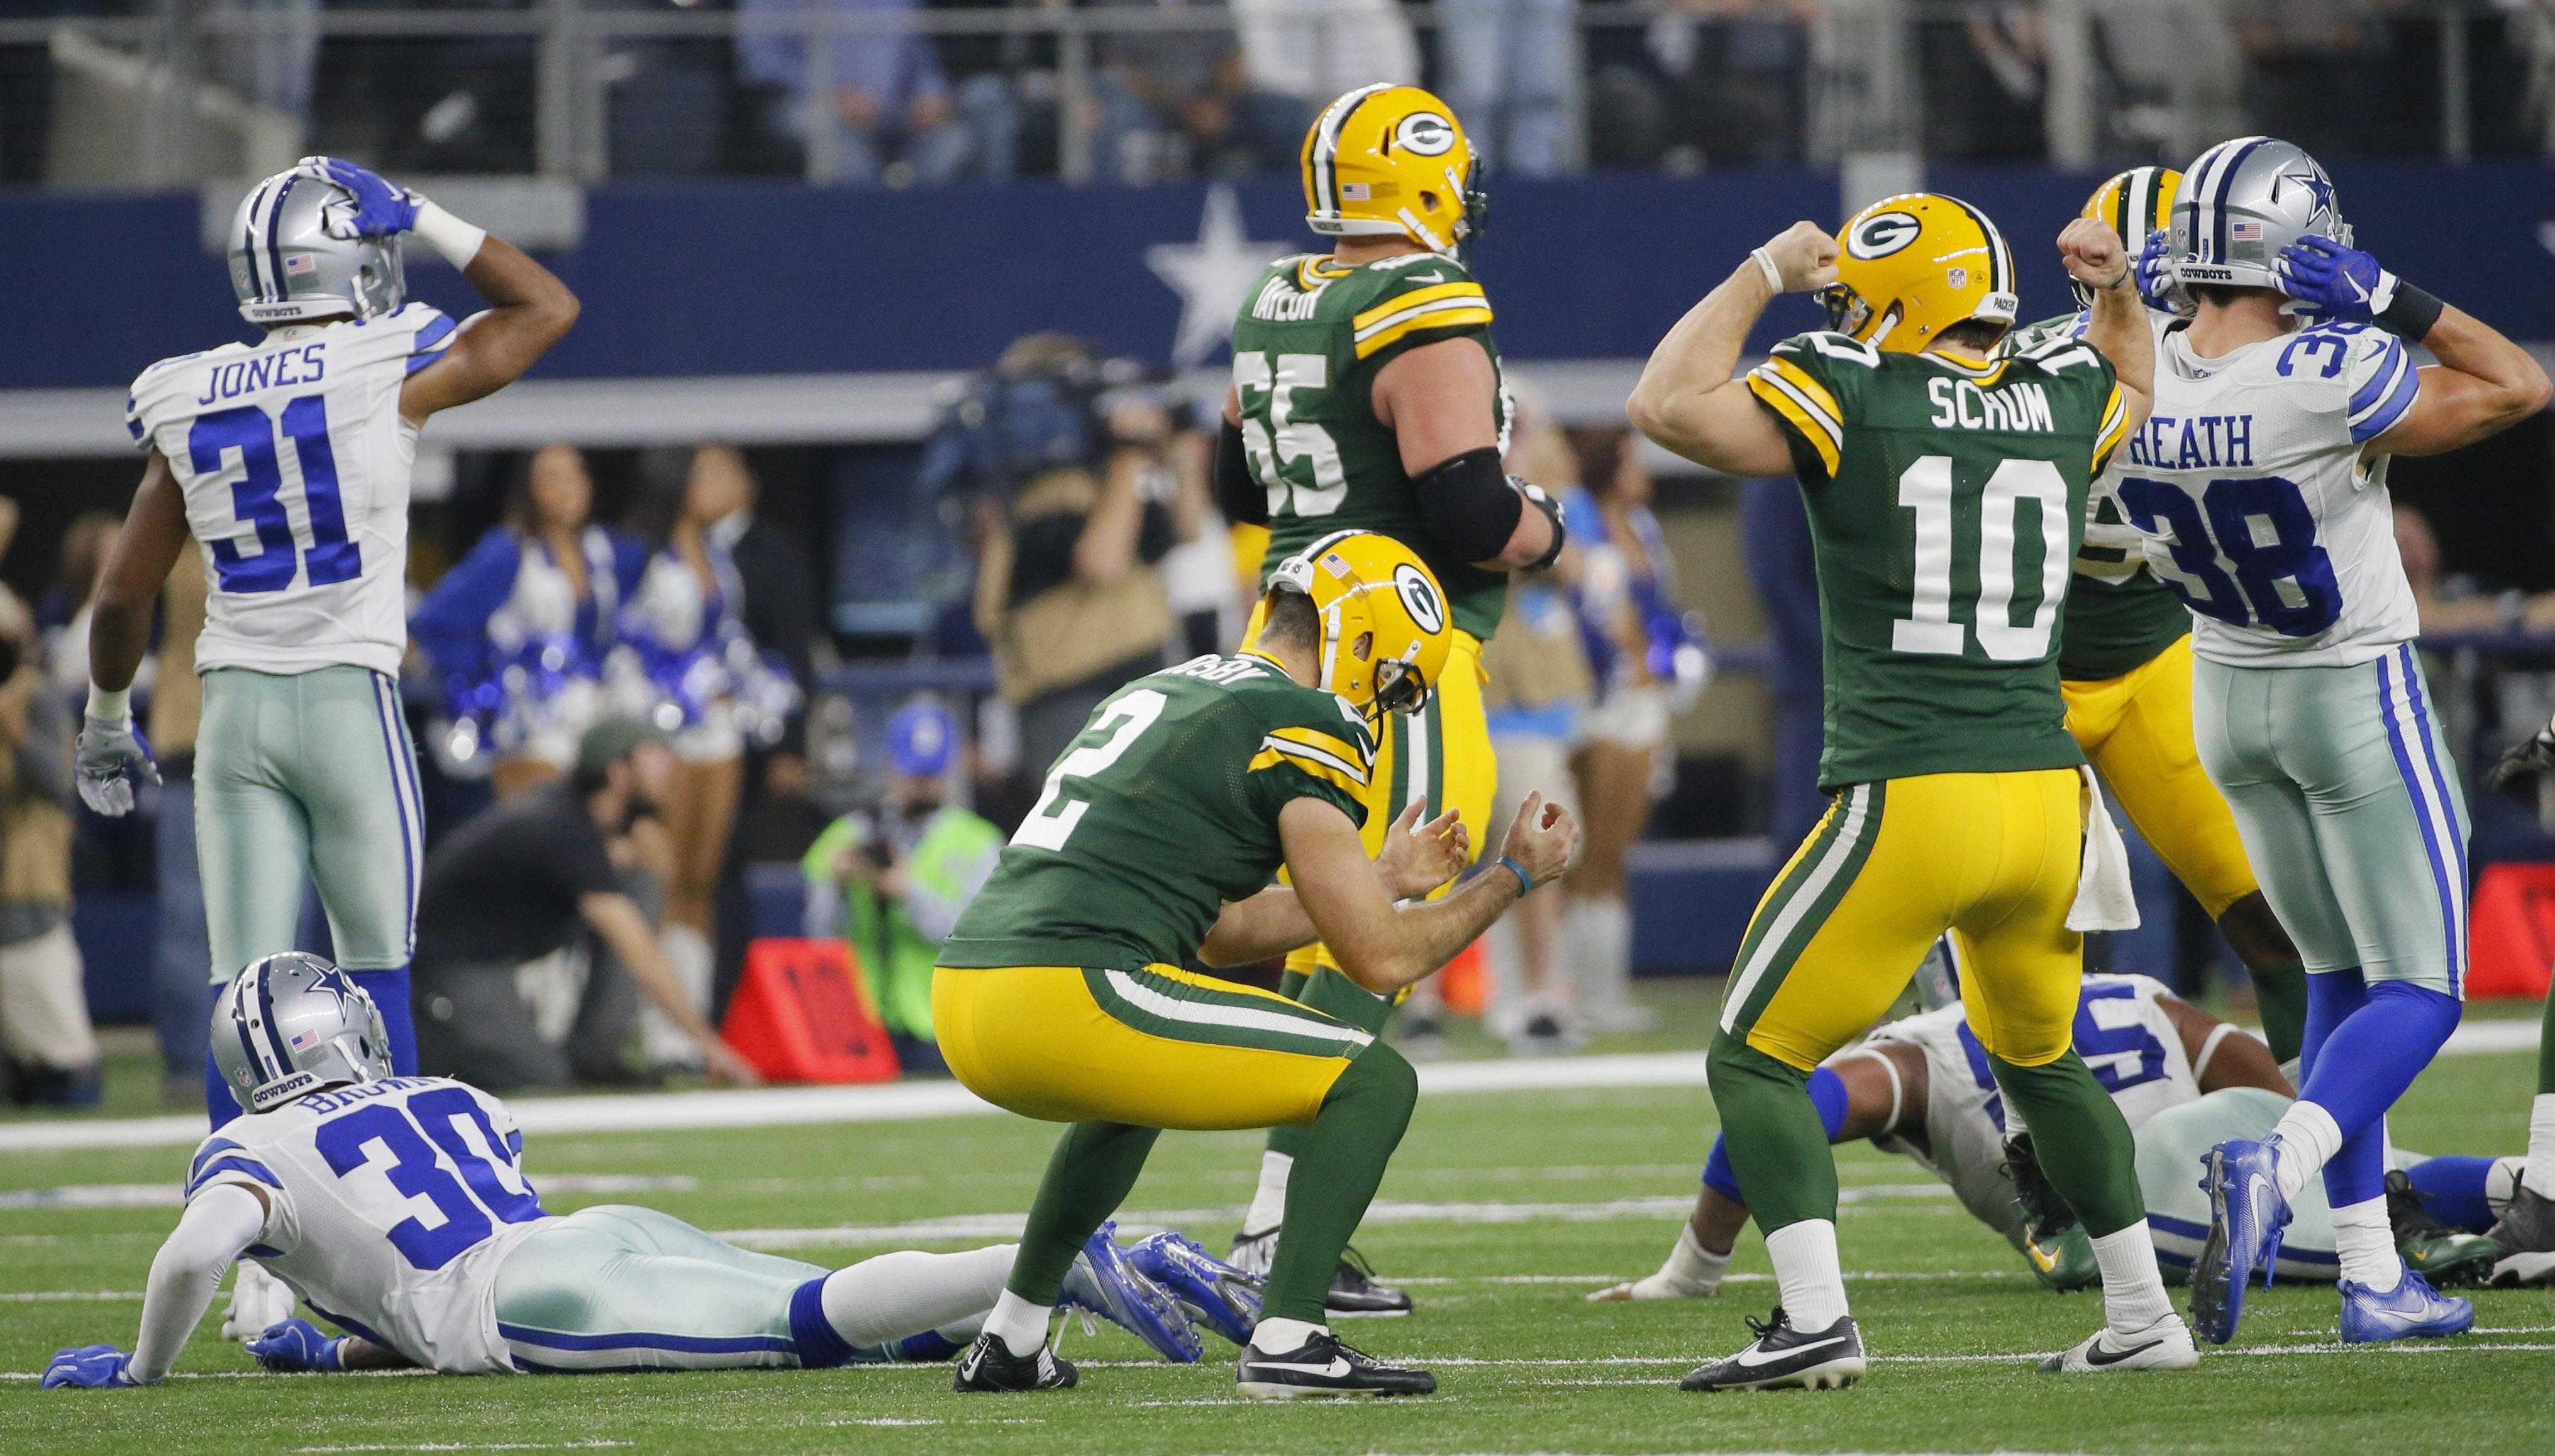 Green Bay Kicker Mason Crosby 2 Reacts After Making The Game Winning Field